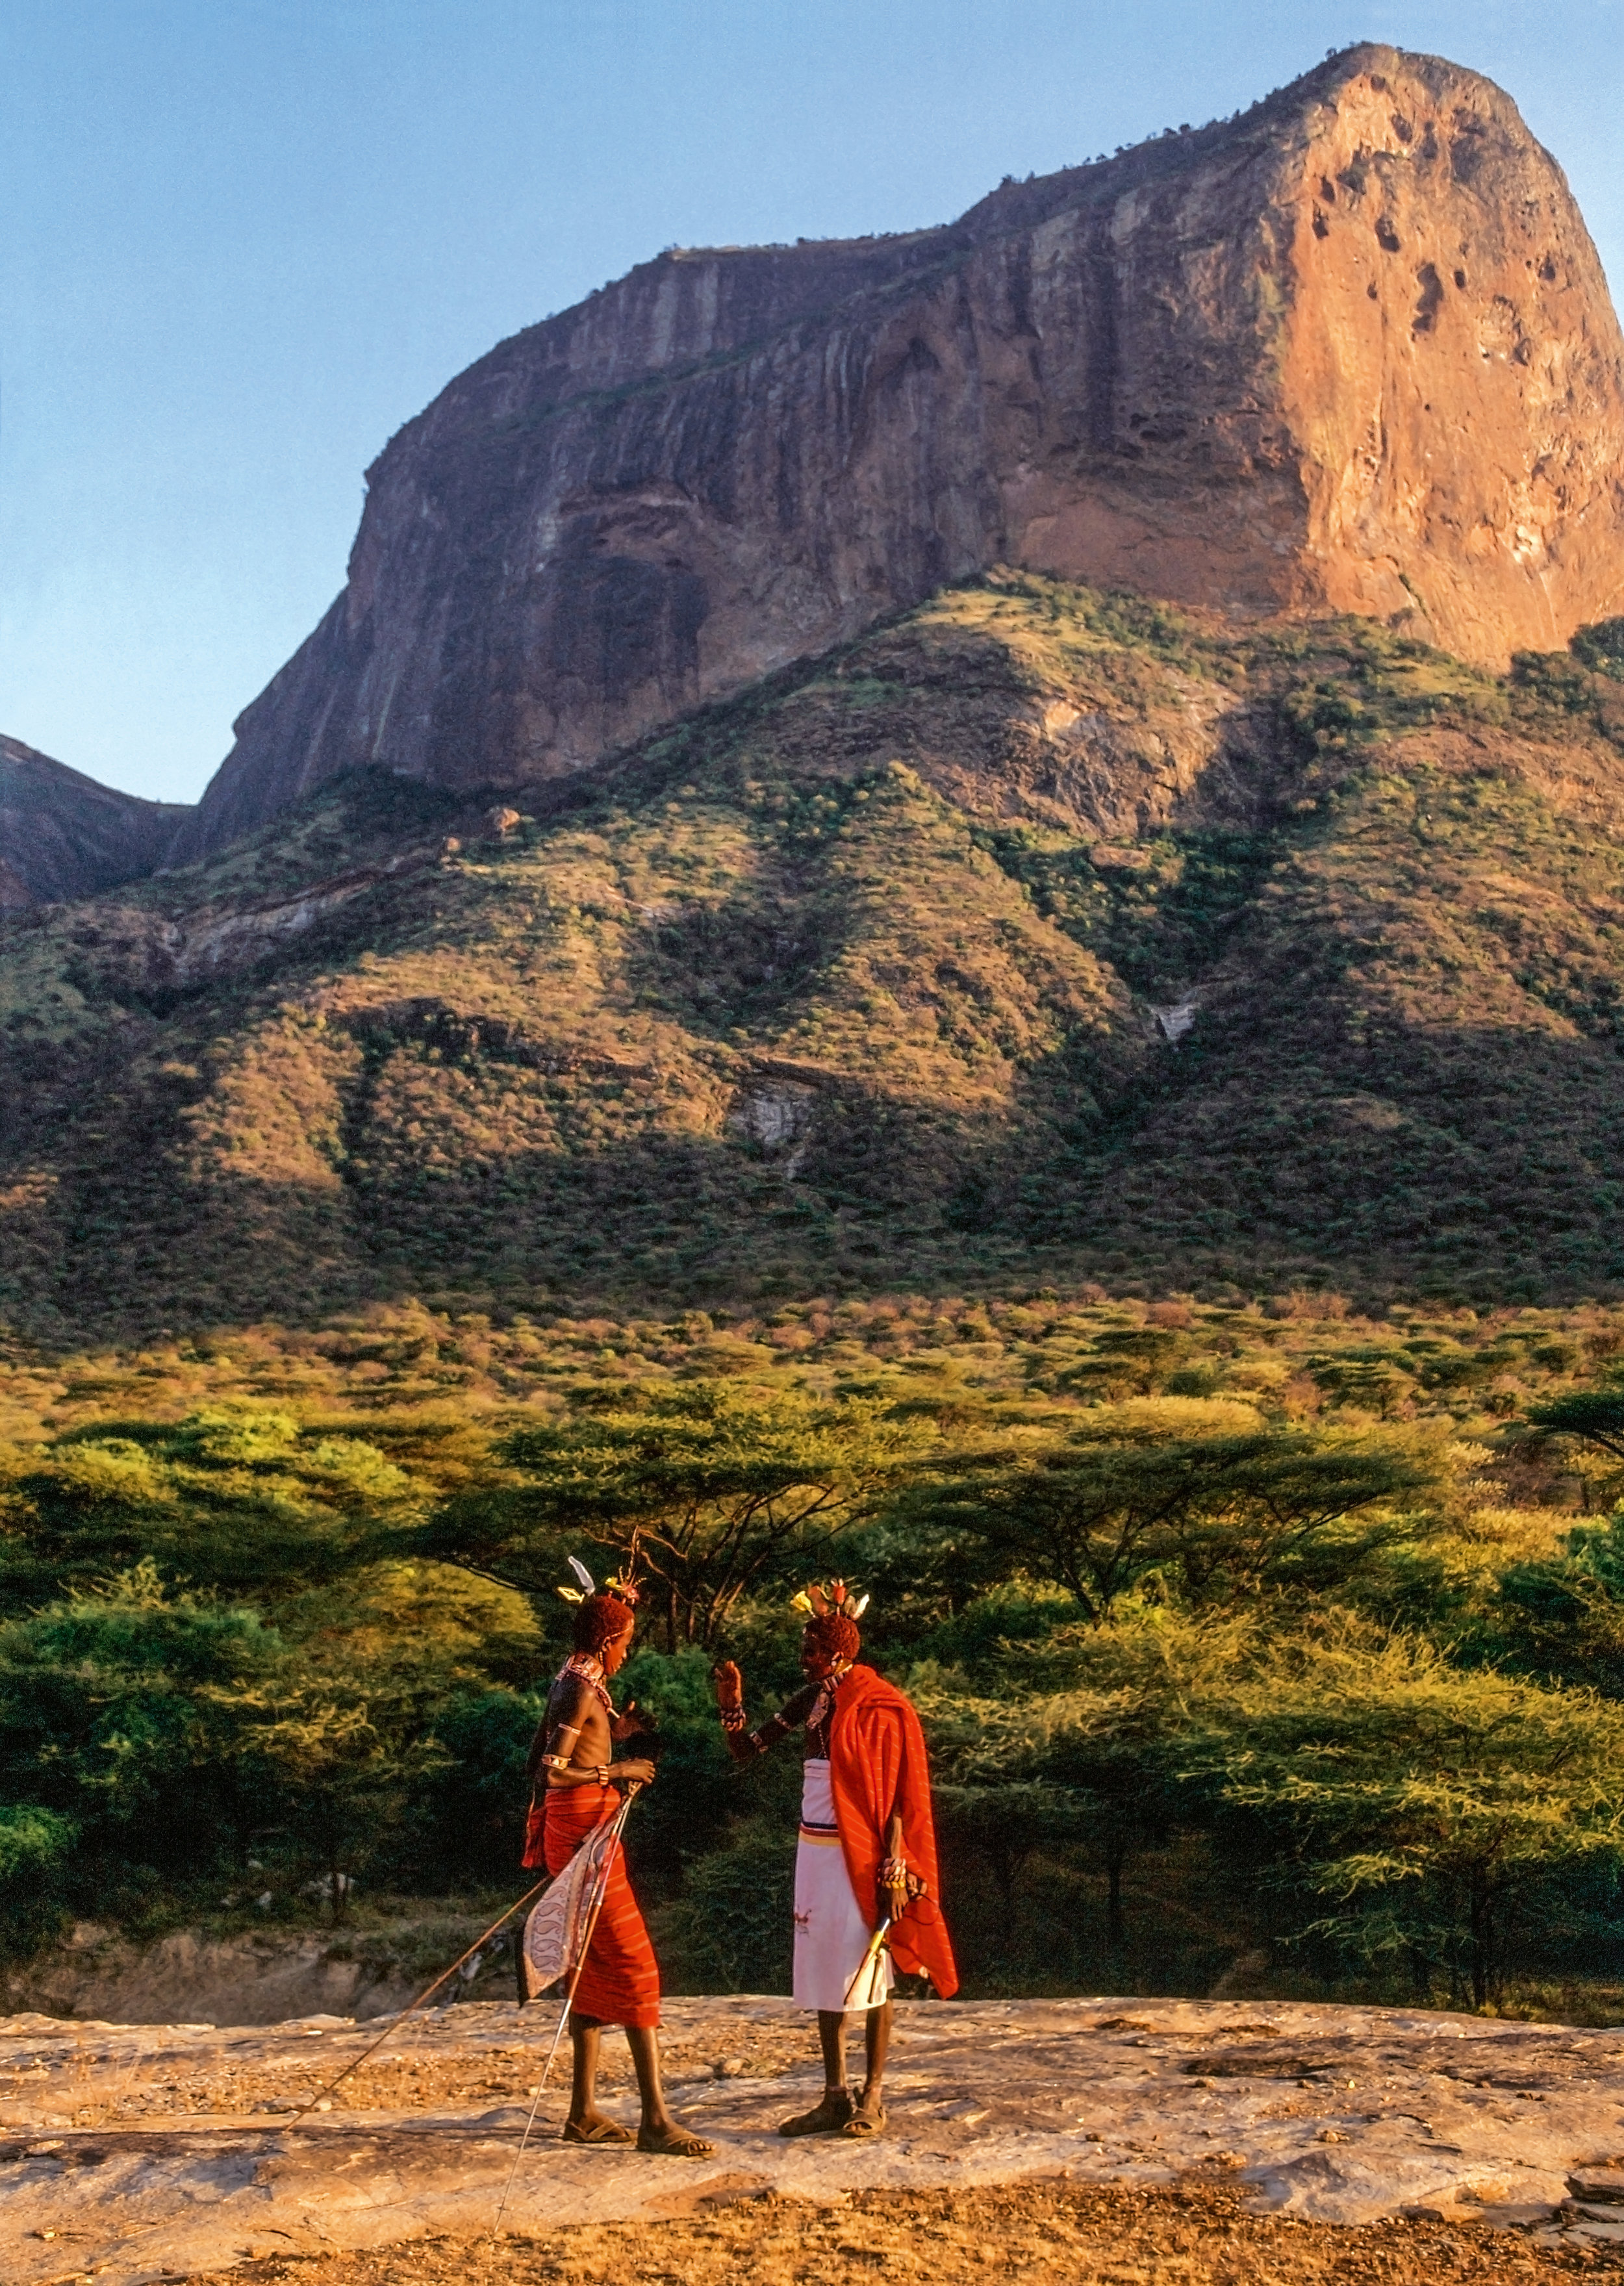 Two Tribal warriors, members of a sub-clan of the Rendille who have intermarries with the Samburu, converse in the valley of Mount Poi. © African Twilight: The Vanishing Cultures and Ceremonies of the African Continent by Carol Beckwith and Angela Fisher, Rizzoli, 2018.